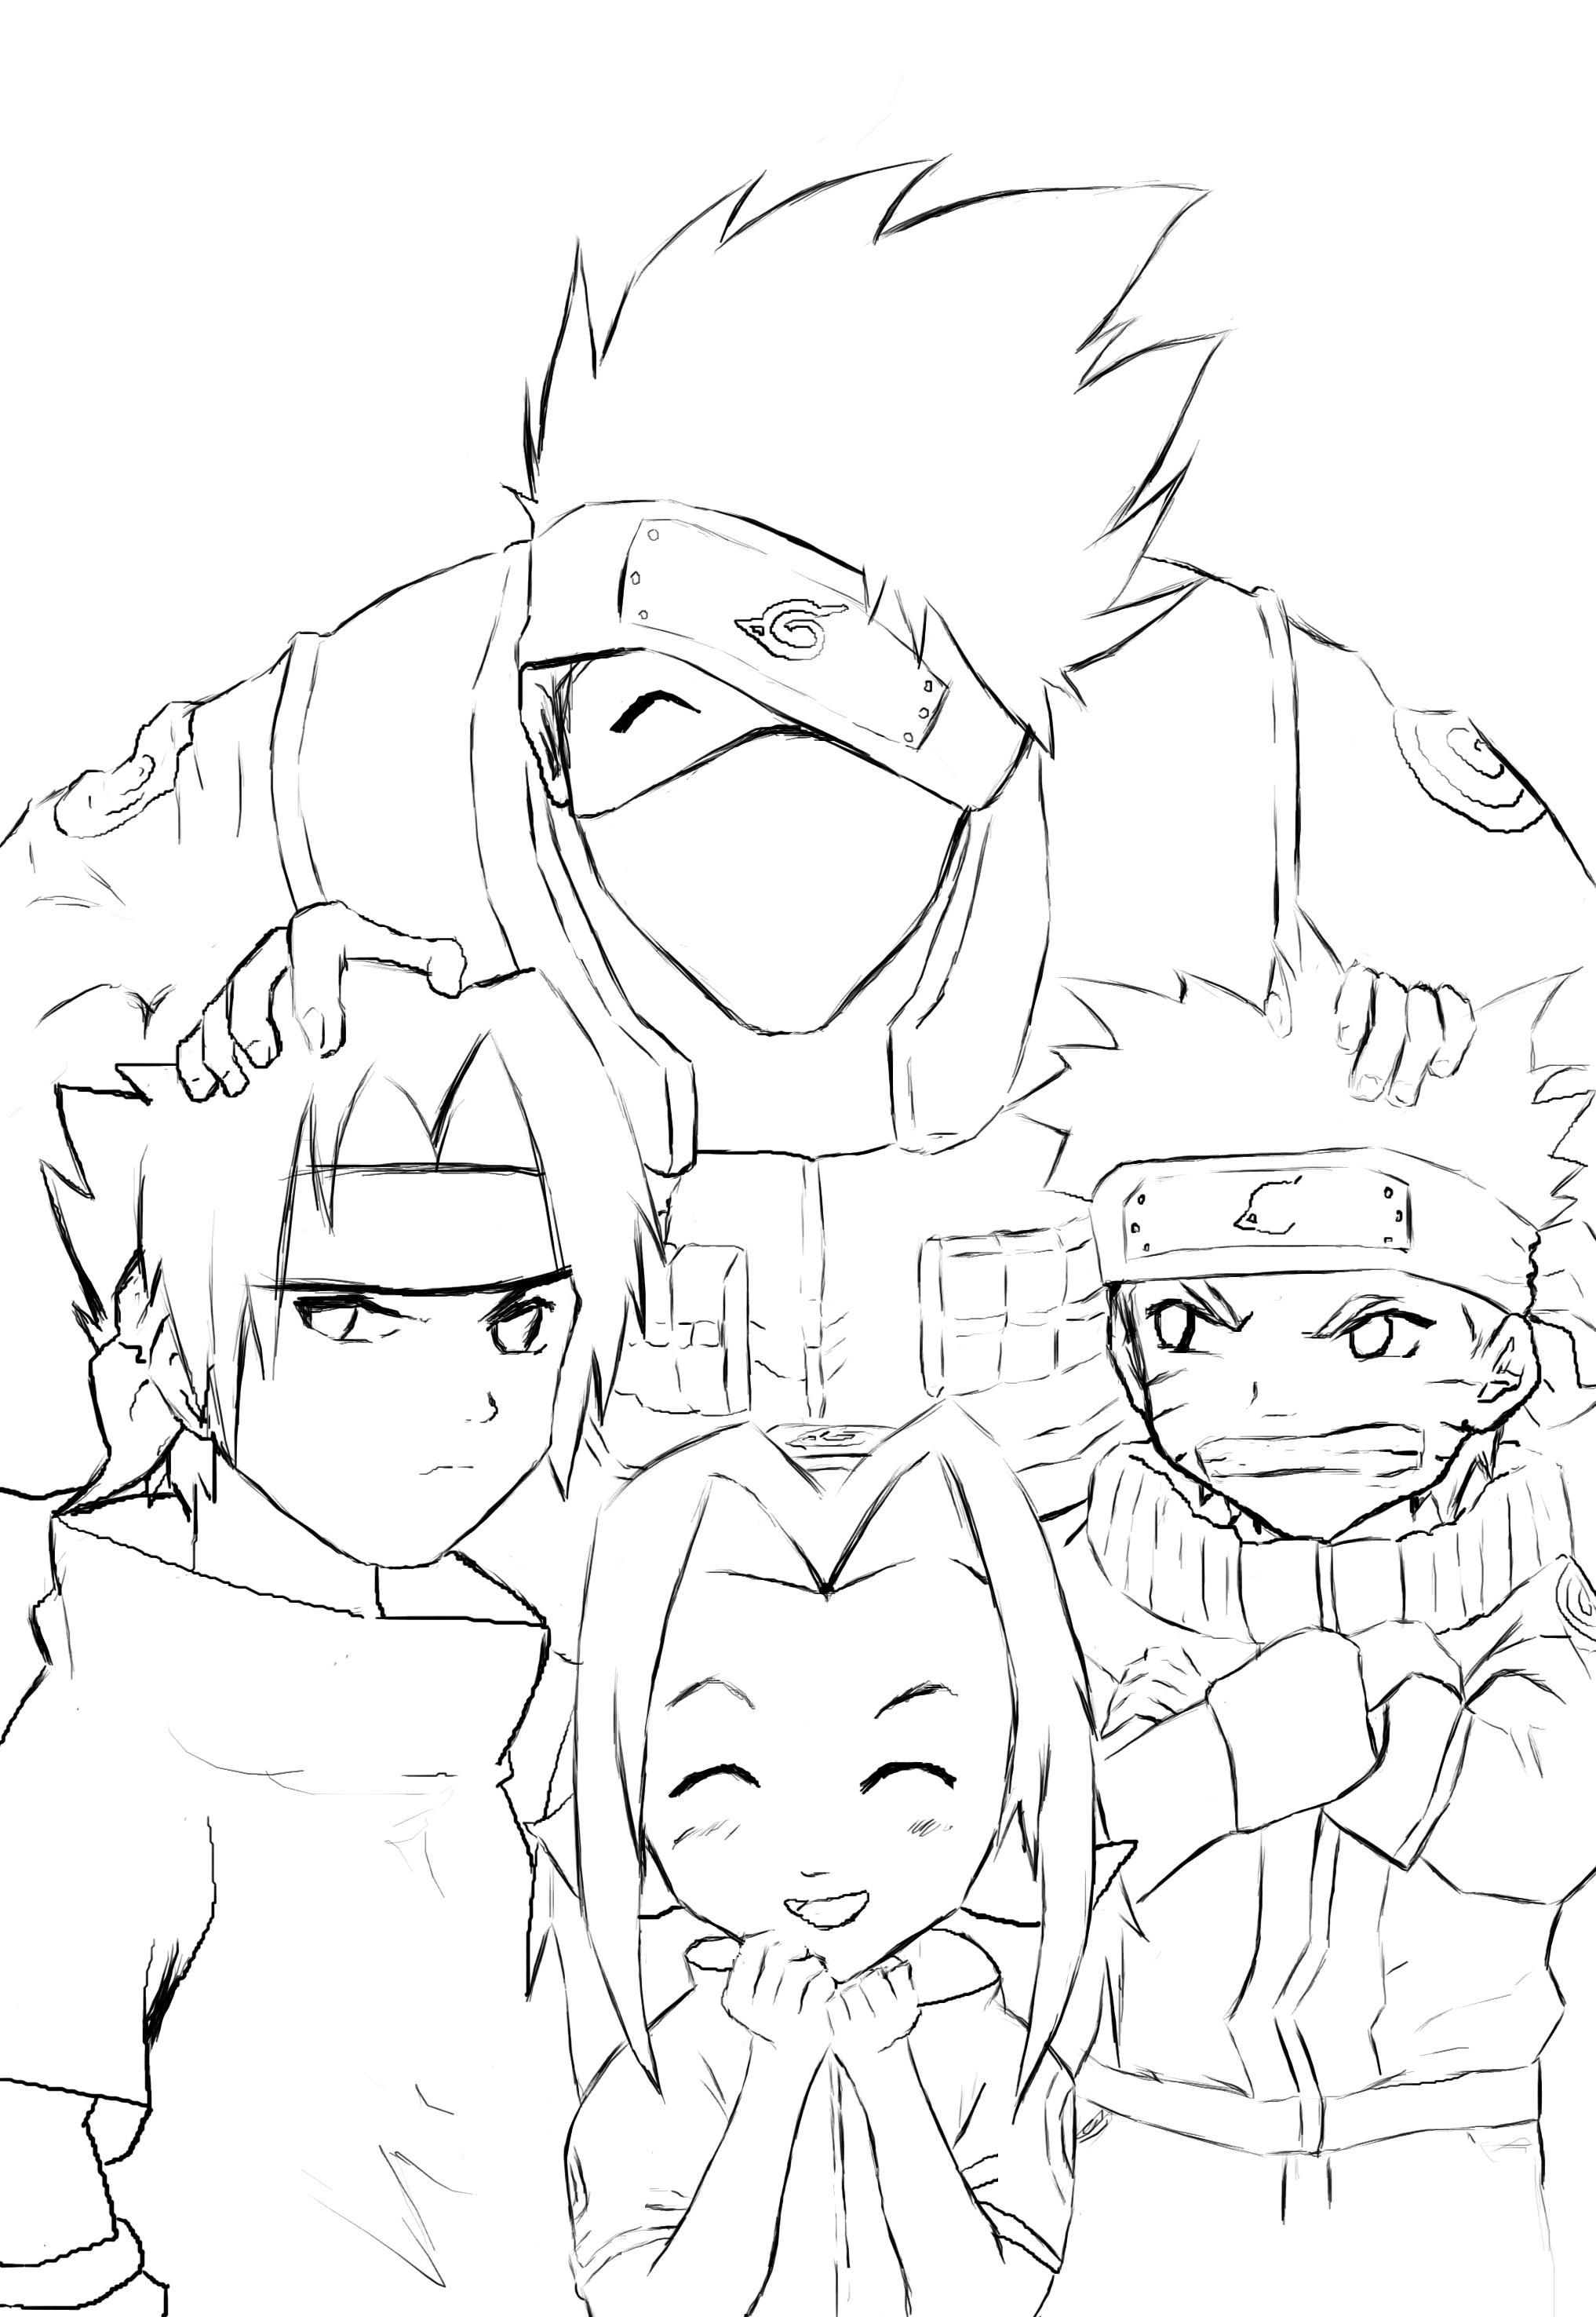 Lineart Naruto : Naruto team lineart by anneleen on deviantart